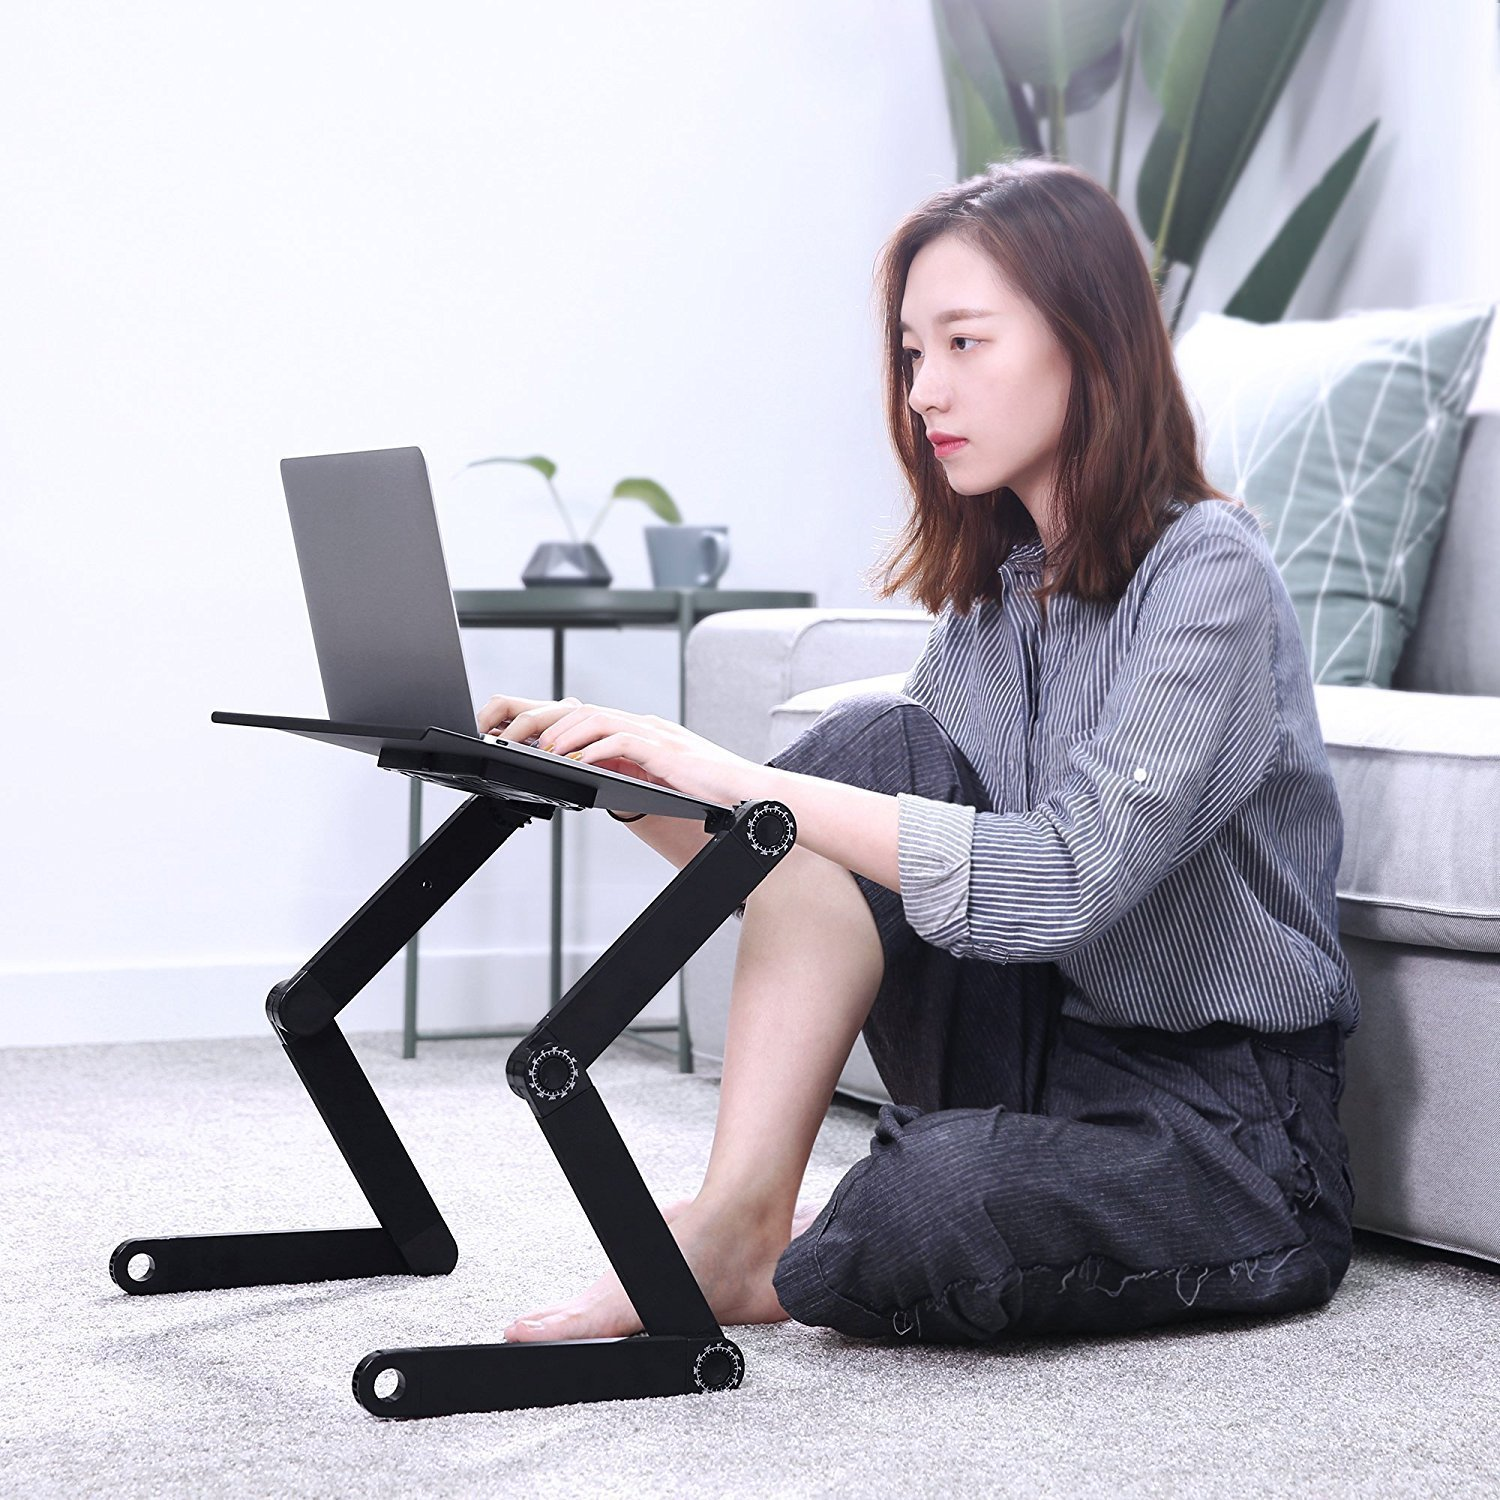 Portable Laptop Stand, Cozy Aluminum Vented Lap Workstation Desk with Mouse Pad, Foldable Book Reading Stand Notebook Tablet Holder on Sofa, Adjustable Bed Table Tray, 2 CPU Cooling Fans, Black